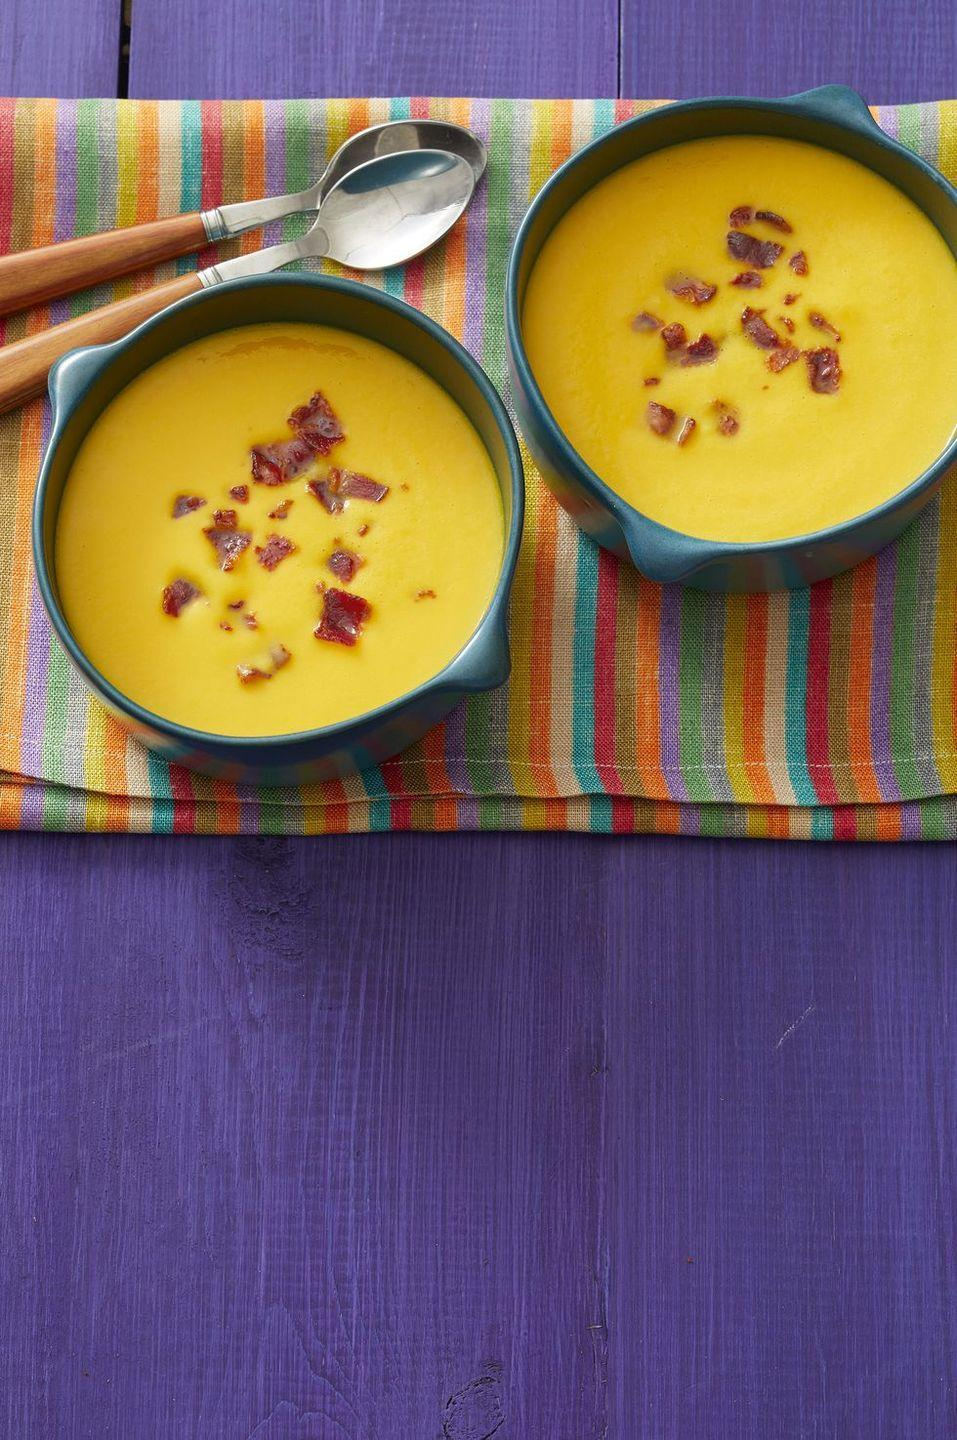 "<p>Start your meal off with bowl of creamy butternut squash soup. It'll get everyone excited for the main course!</p><p><strong><a href=""https://www.thepioneerwoman.com/food-cooking/recipes/a32947322/butternut-squash-soup-with-bacon-recipe/"" rel=""nofollow noopener"" target=""_blank"" data-ylk=""slk:Get the recipe."" class=""link rapid-noclick-resp"">Get the recipe.</a></strong></p><p><strong><a class=""link rapid-noclick-resp"" href=""https://go.redirectingat.com?id=74968X1596630&url=https%3A%2F%2Fwww.walmart.com%2Fbrowse%2Fhome%2Fthe-pioneer-woman-cookware%2F4044_623679_6182459_9190581&sref=https%3A%2F%2Fwww.thepioneerwoman.com%2Ffood-cooking%2Fmeals-menus%2Fg33251890%2Fbest-thanksgiving-sides%2F"" rel=""nofollow noopener"" target=""_blank"" data-ylk=""slk:SHOP DUTCH OVENS"">SHOP DUTCH OVENS</a><br></strong></p>"